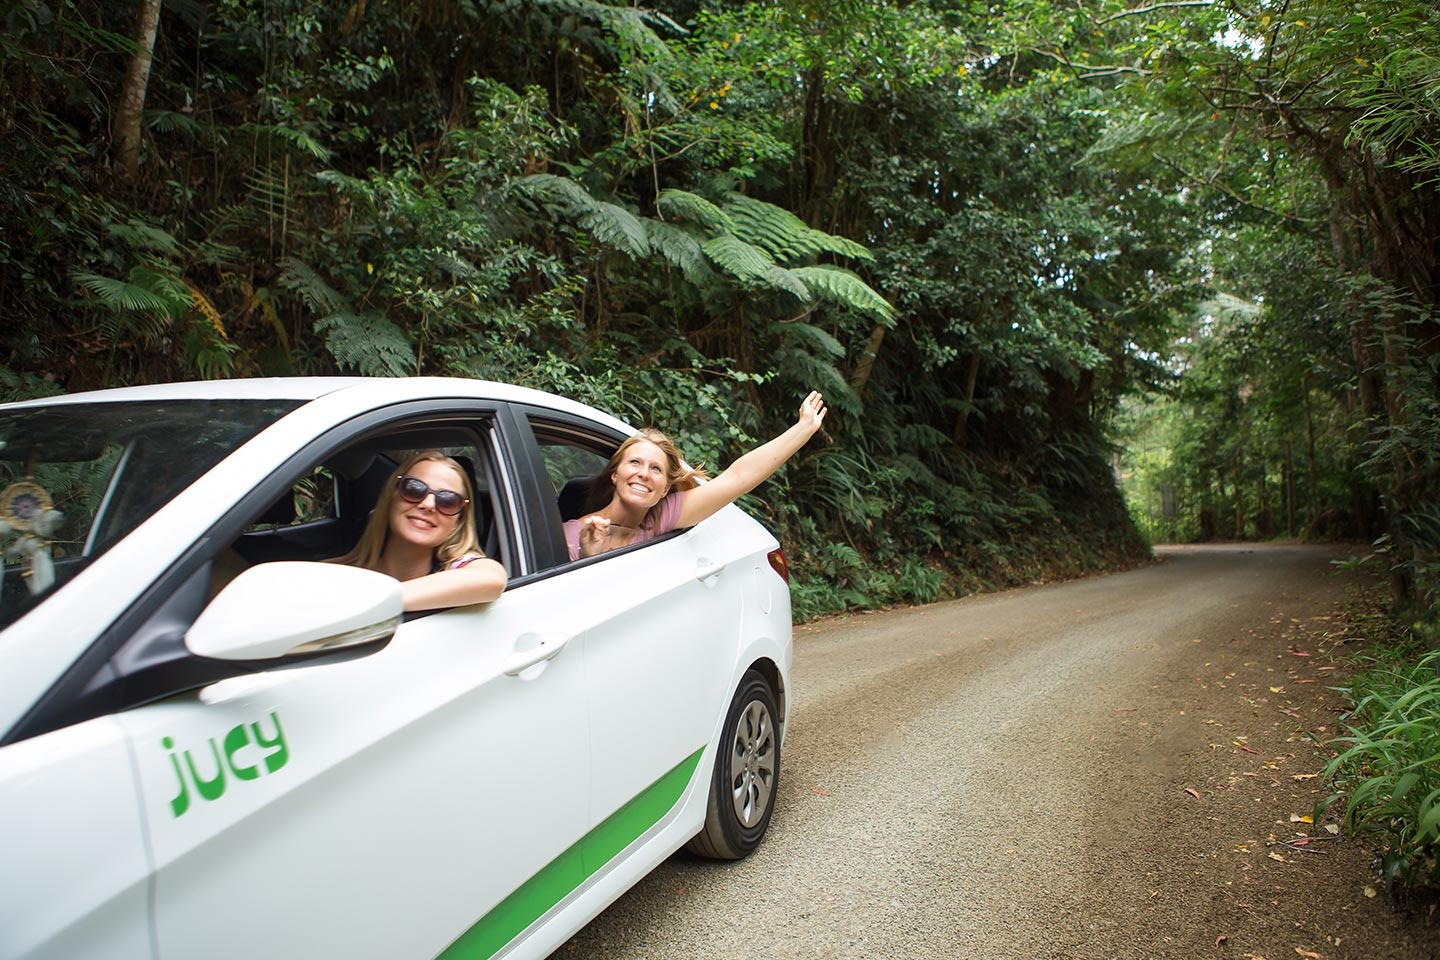 friends driving through forest road having fun